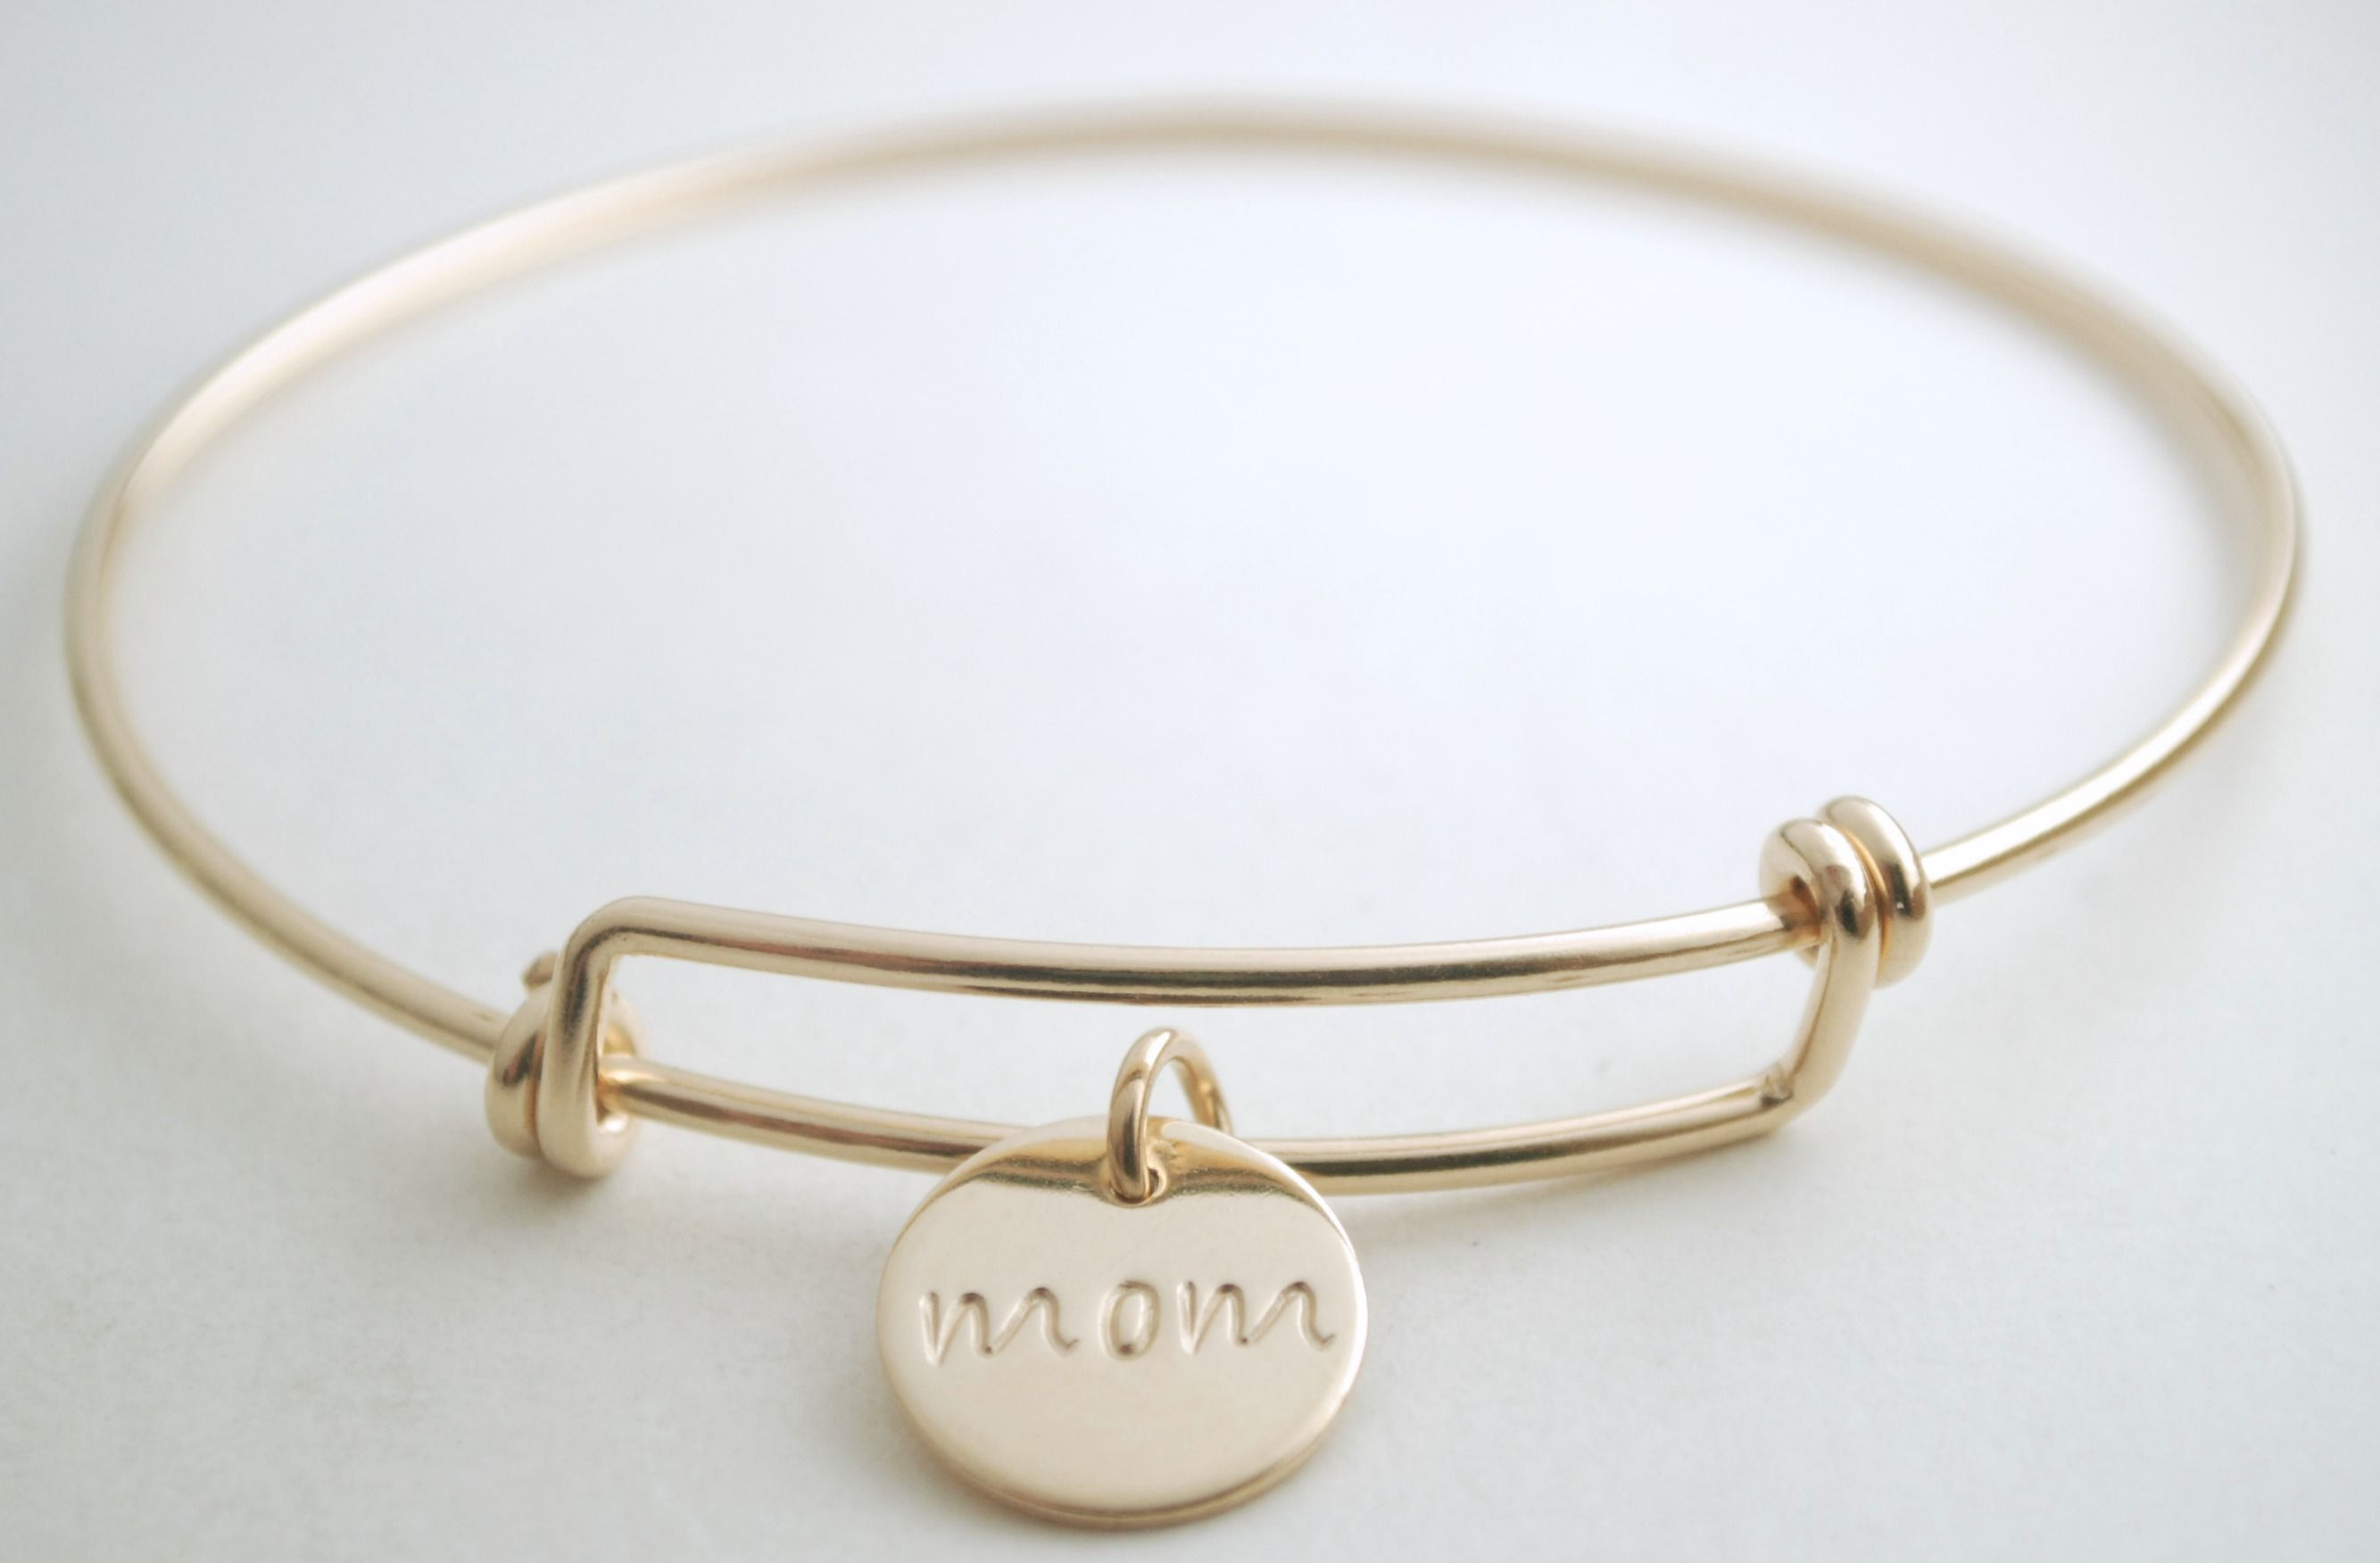 Custom Made Gold Filled Bracelet For Mom Hand Stamped With Name Charm